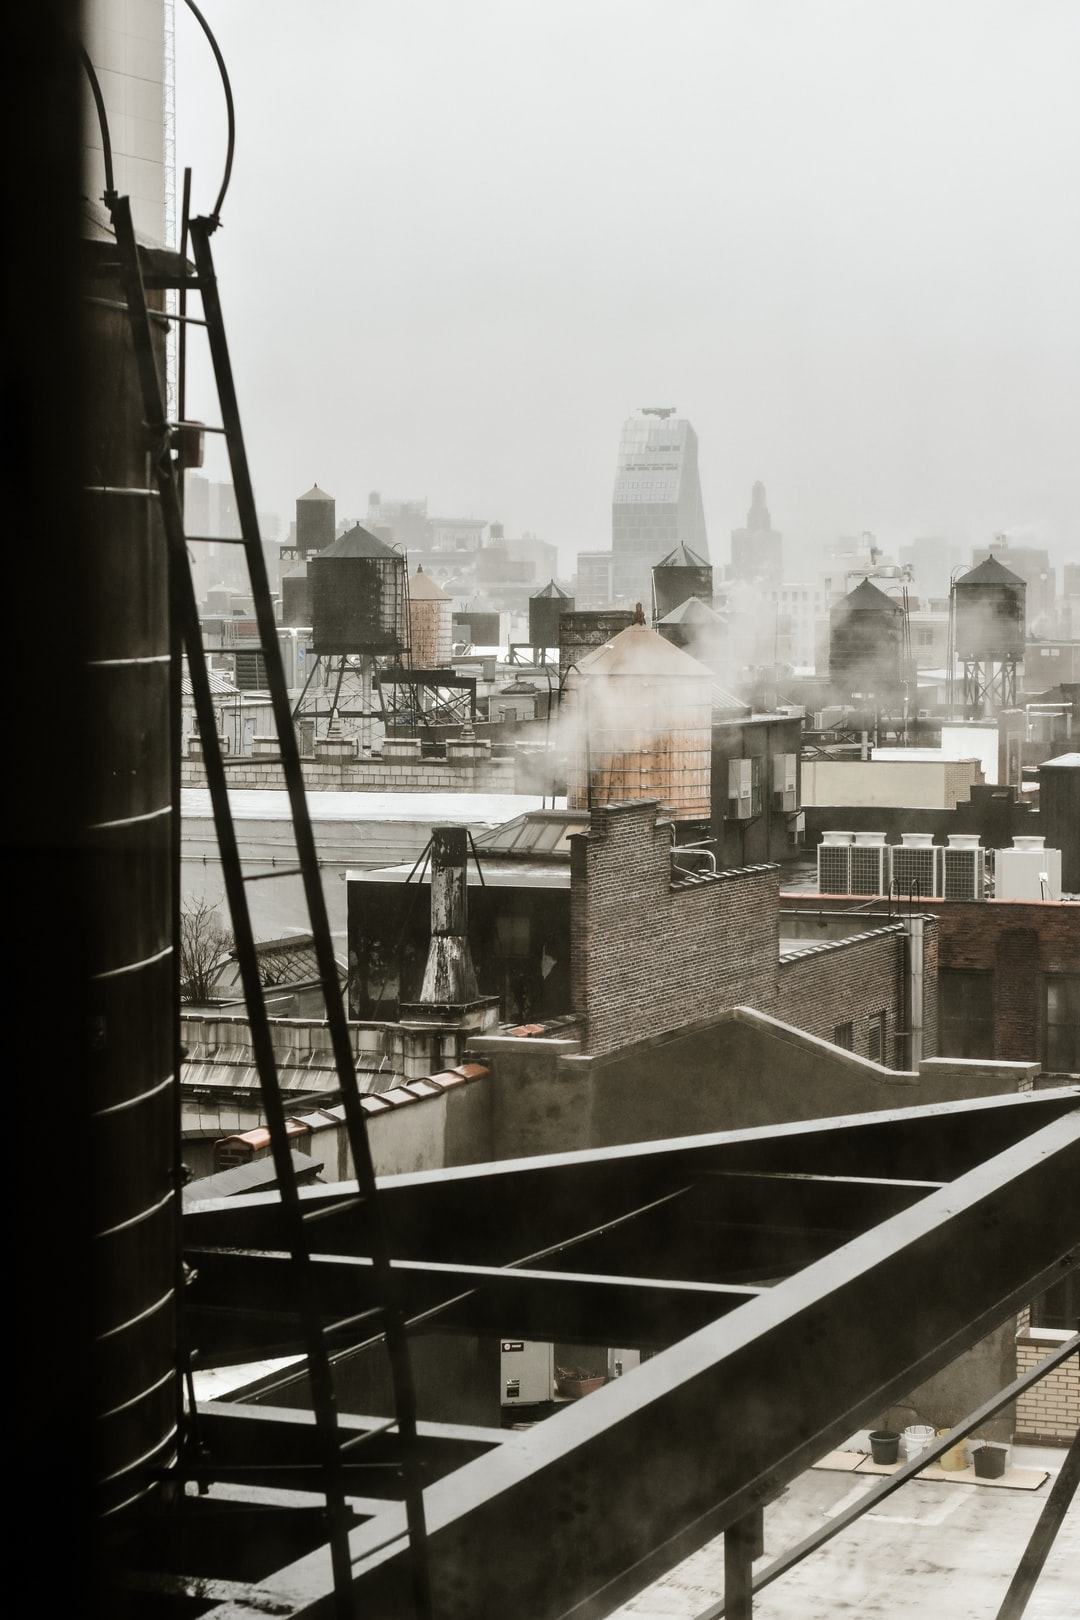 A drizzly Sunday afternoon overlooking Manhattan